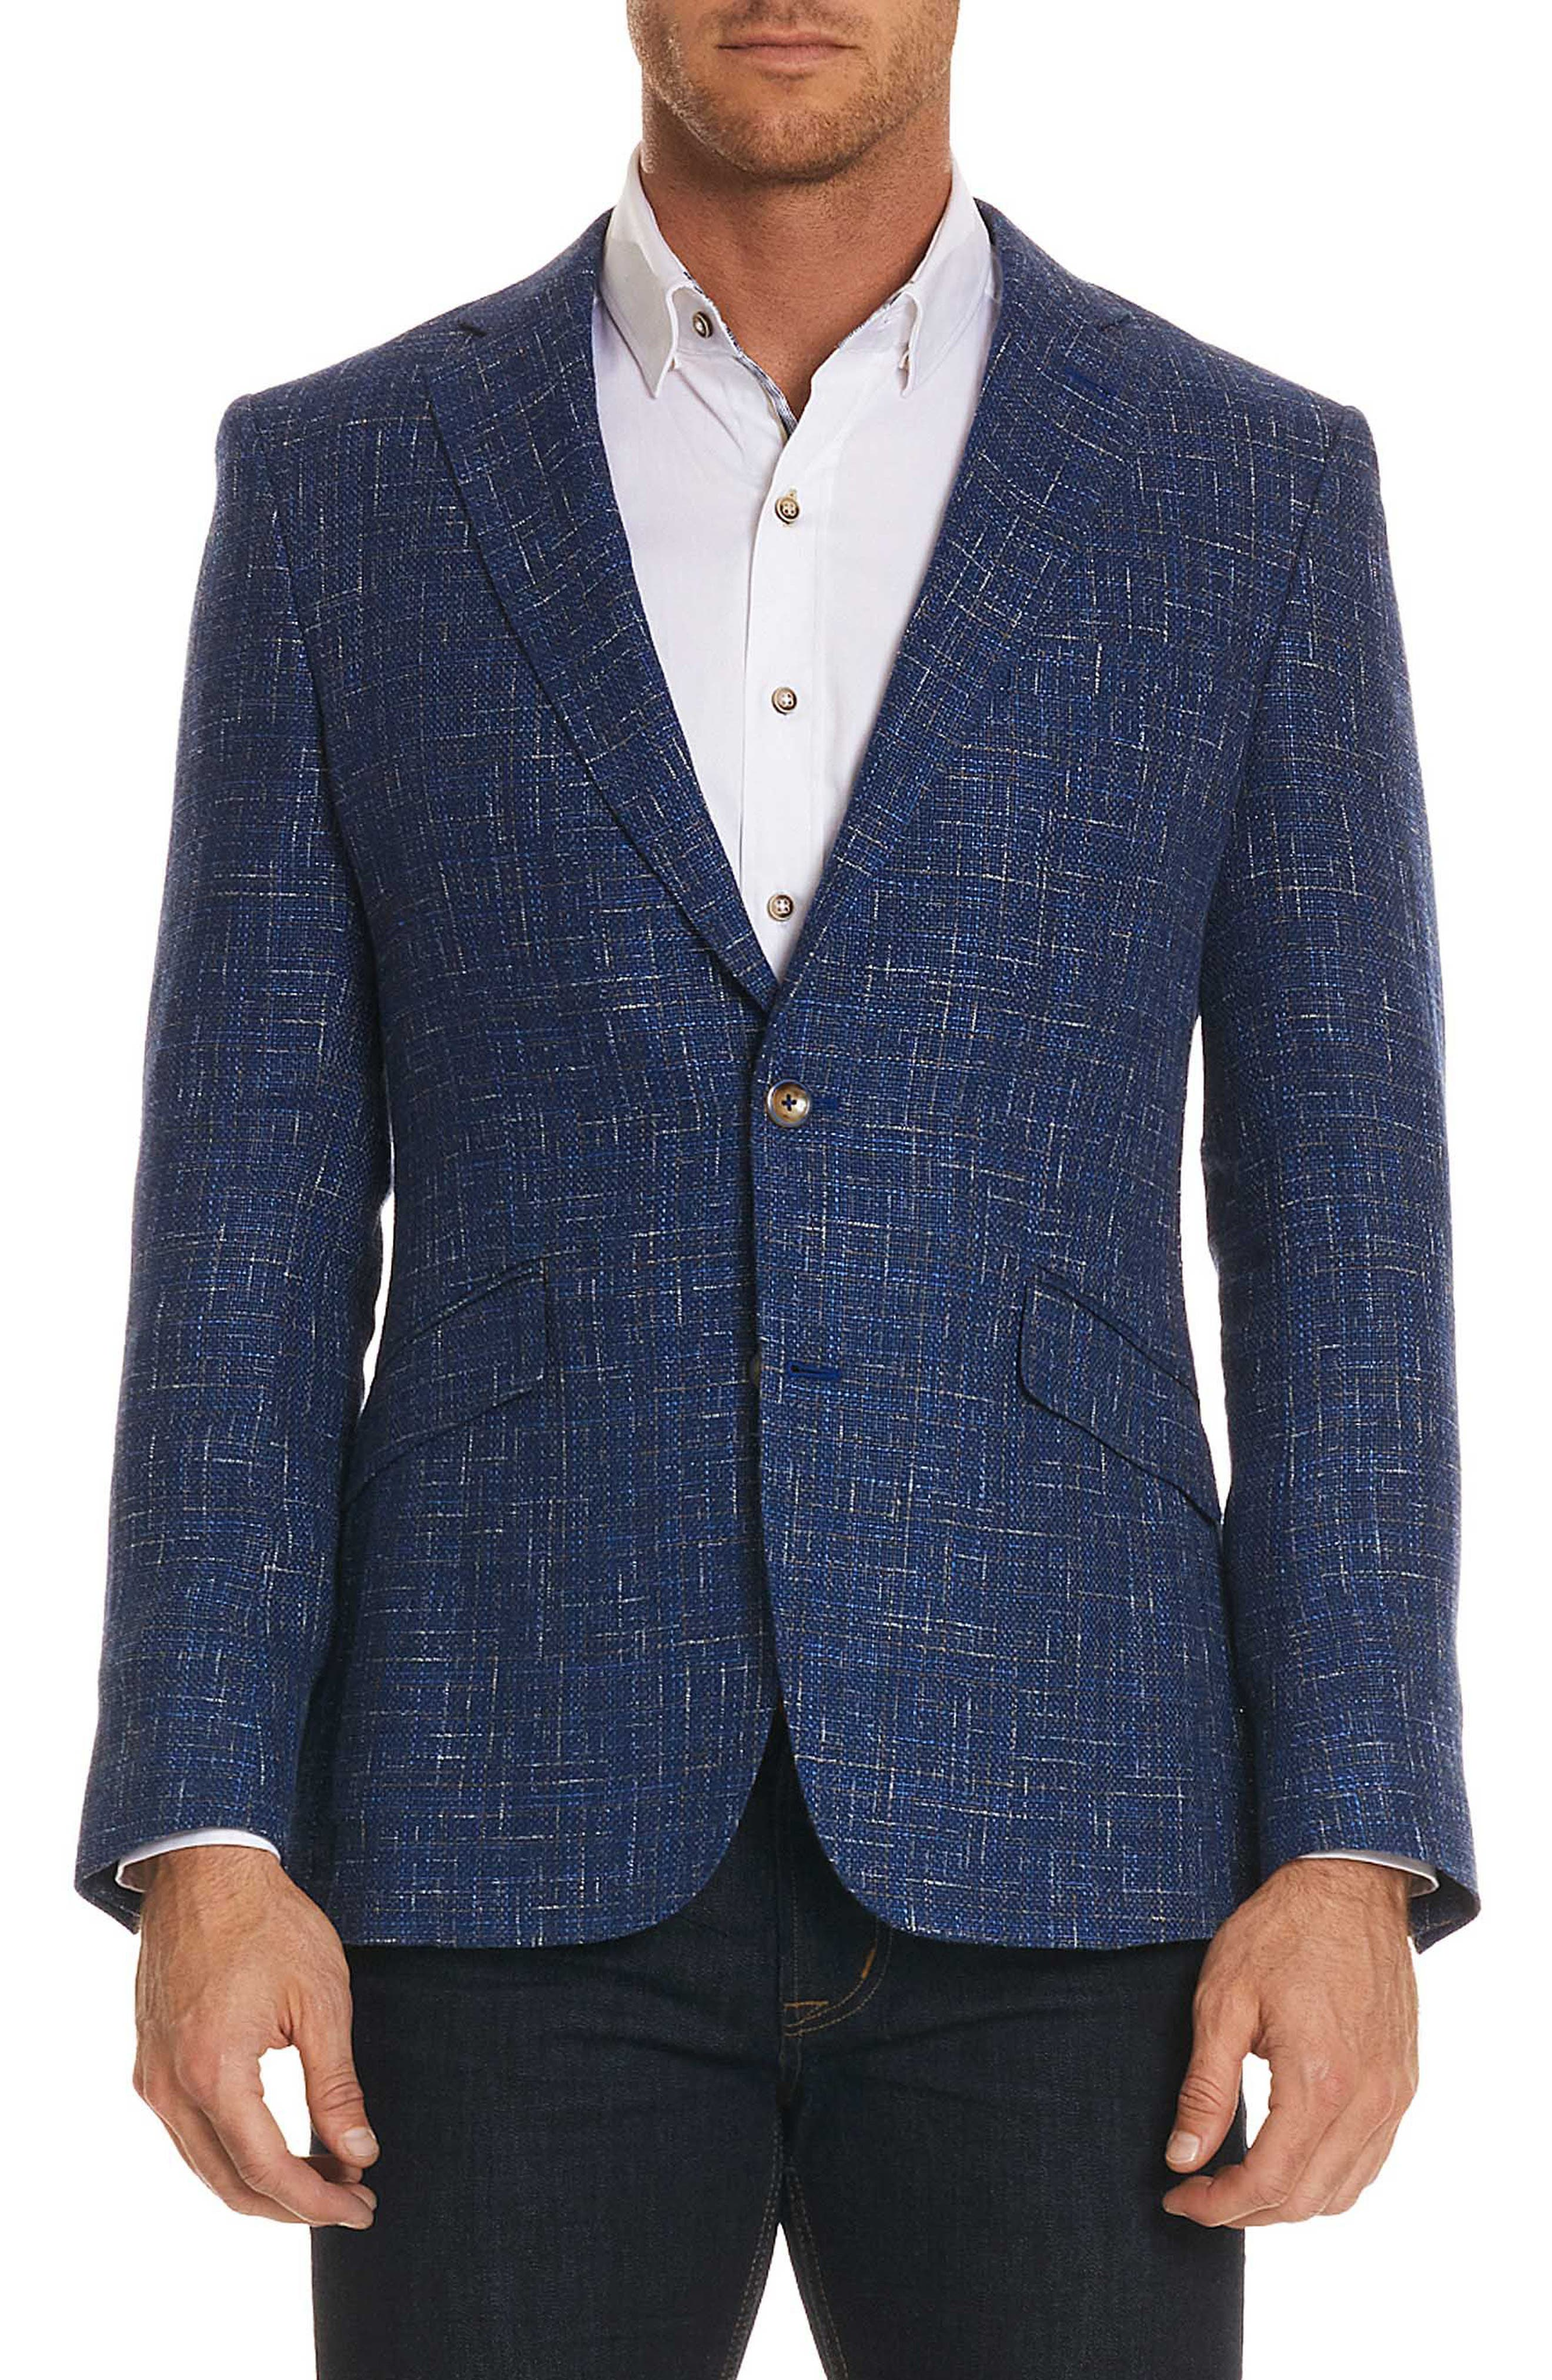 Jeremy Tailored Fit Sportcoat,                         Main,                         color, 400